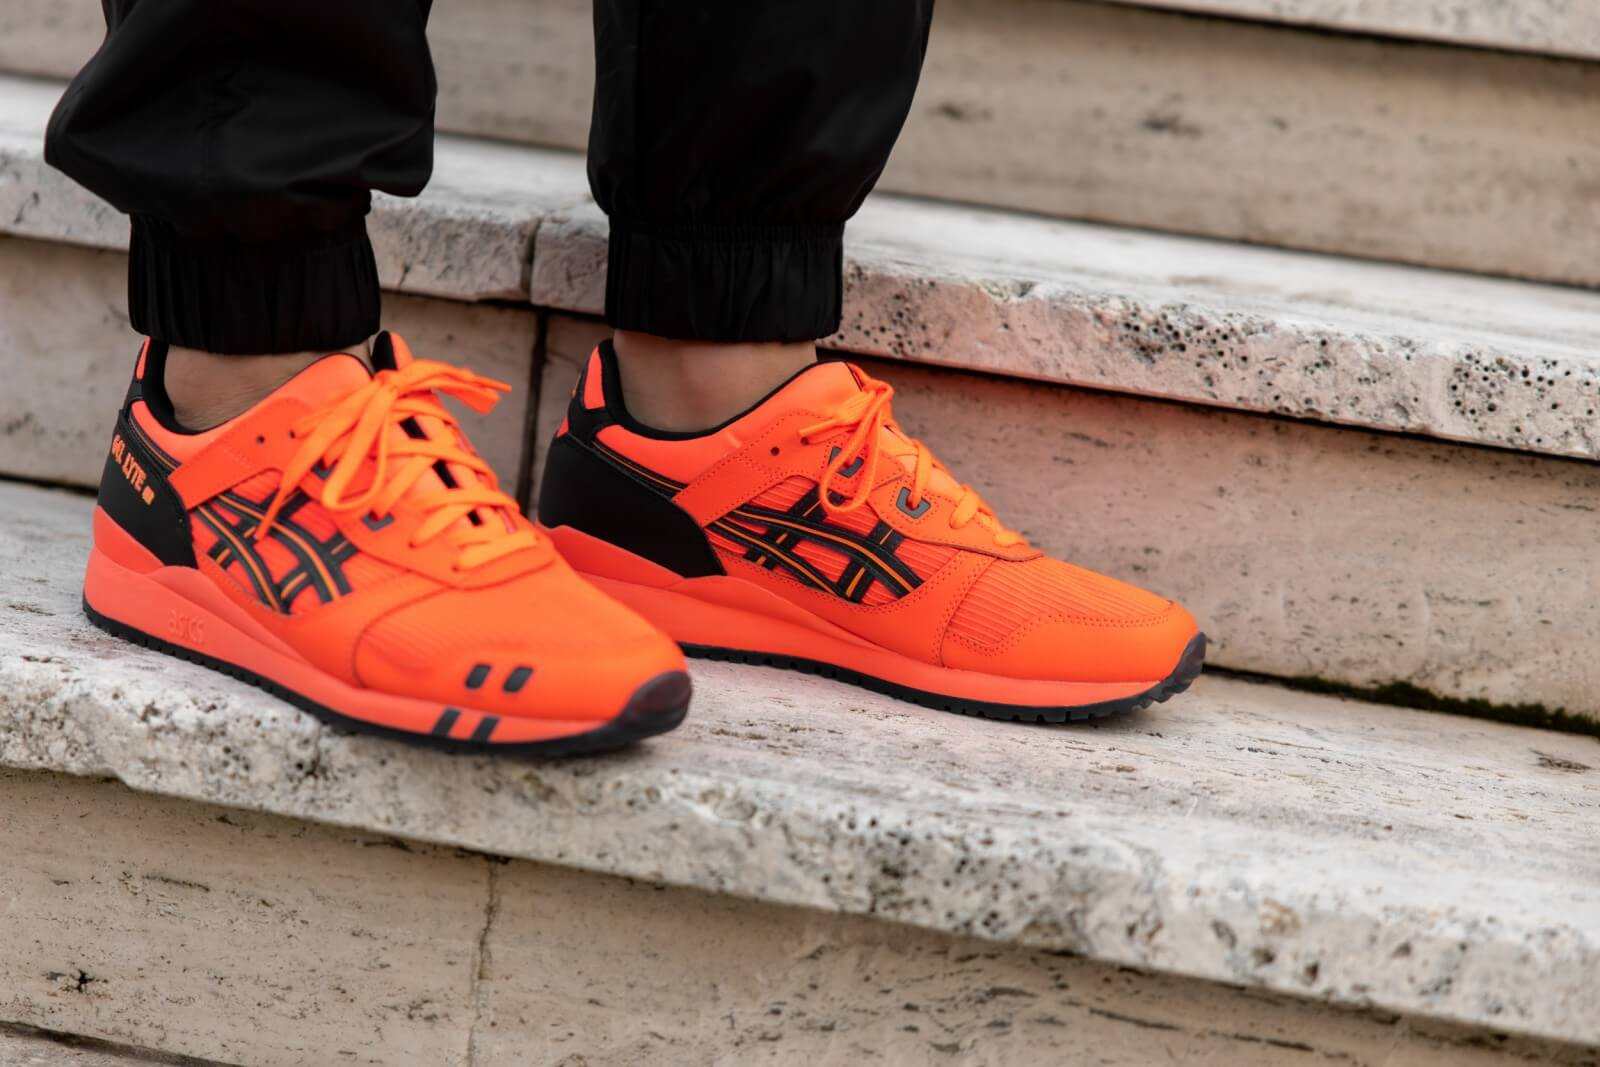 Asics Gel Lyte III OG - Sunrise Red #1201A052-700-Preorder Item-Navy Selected Shop